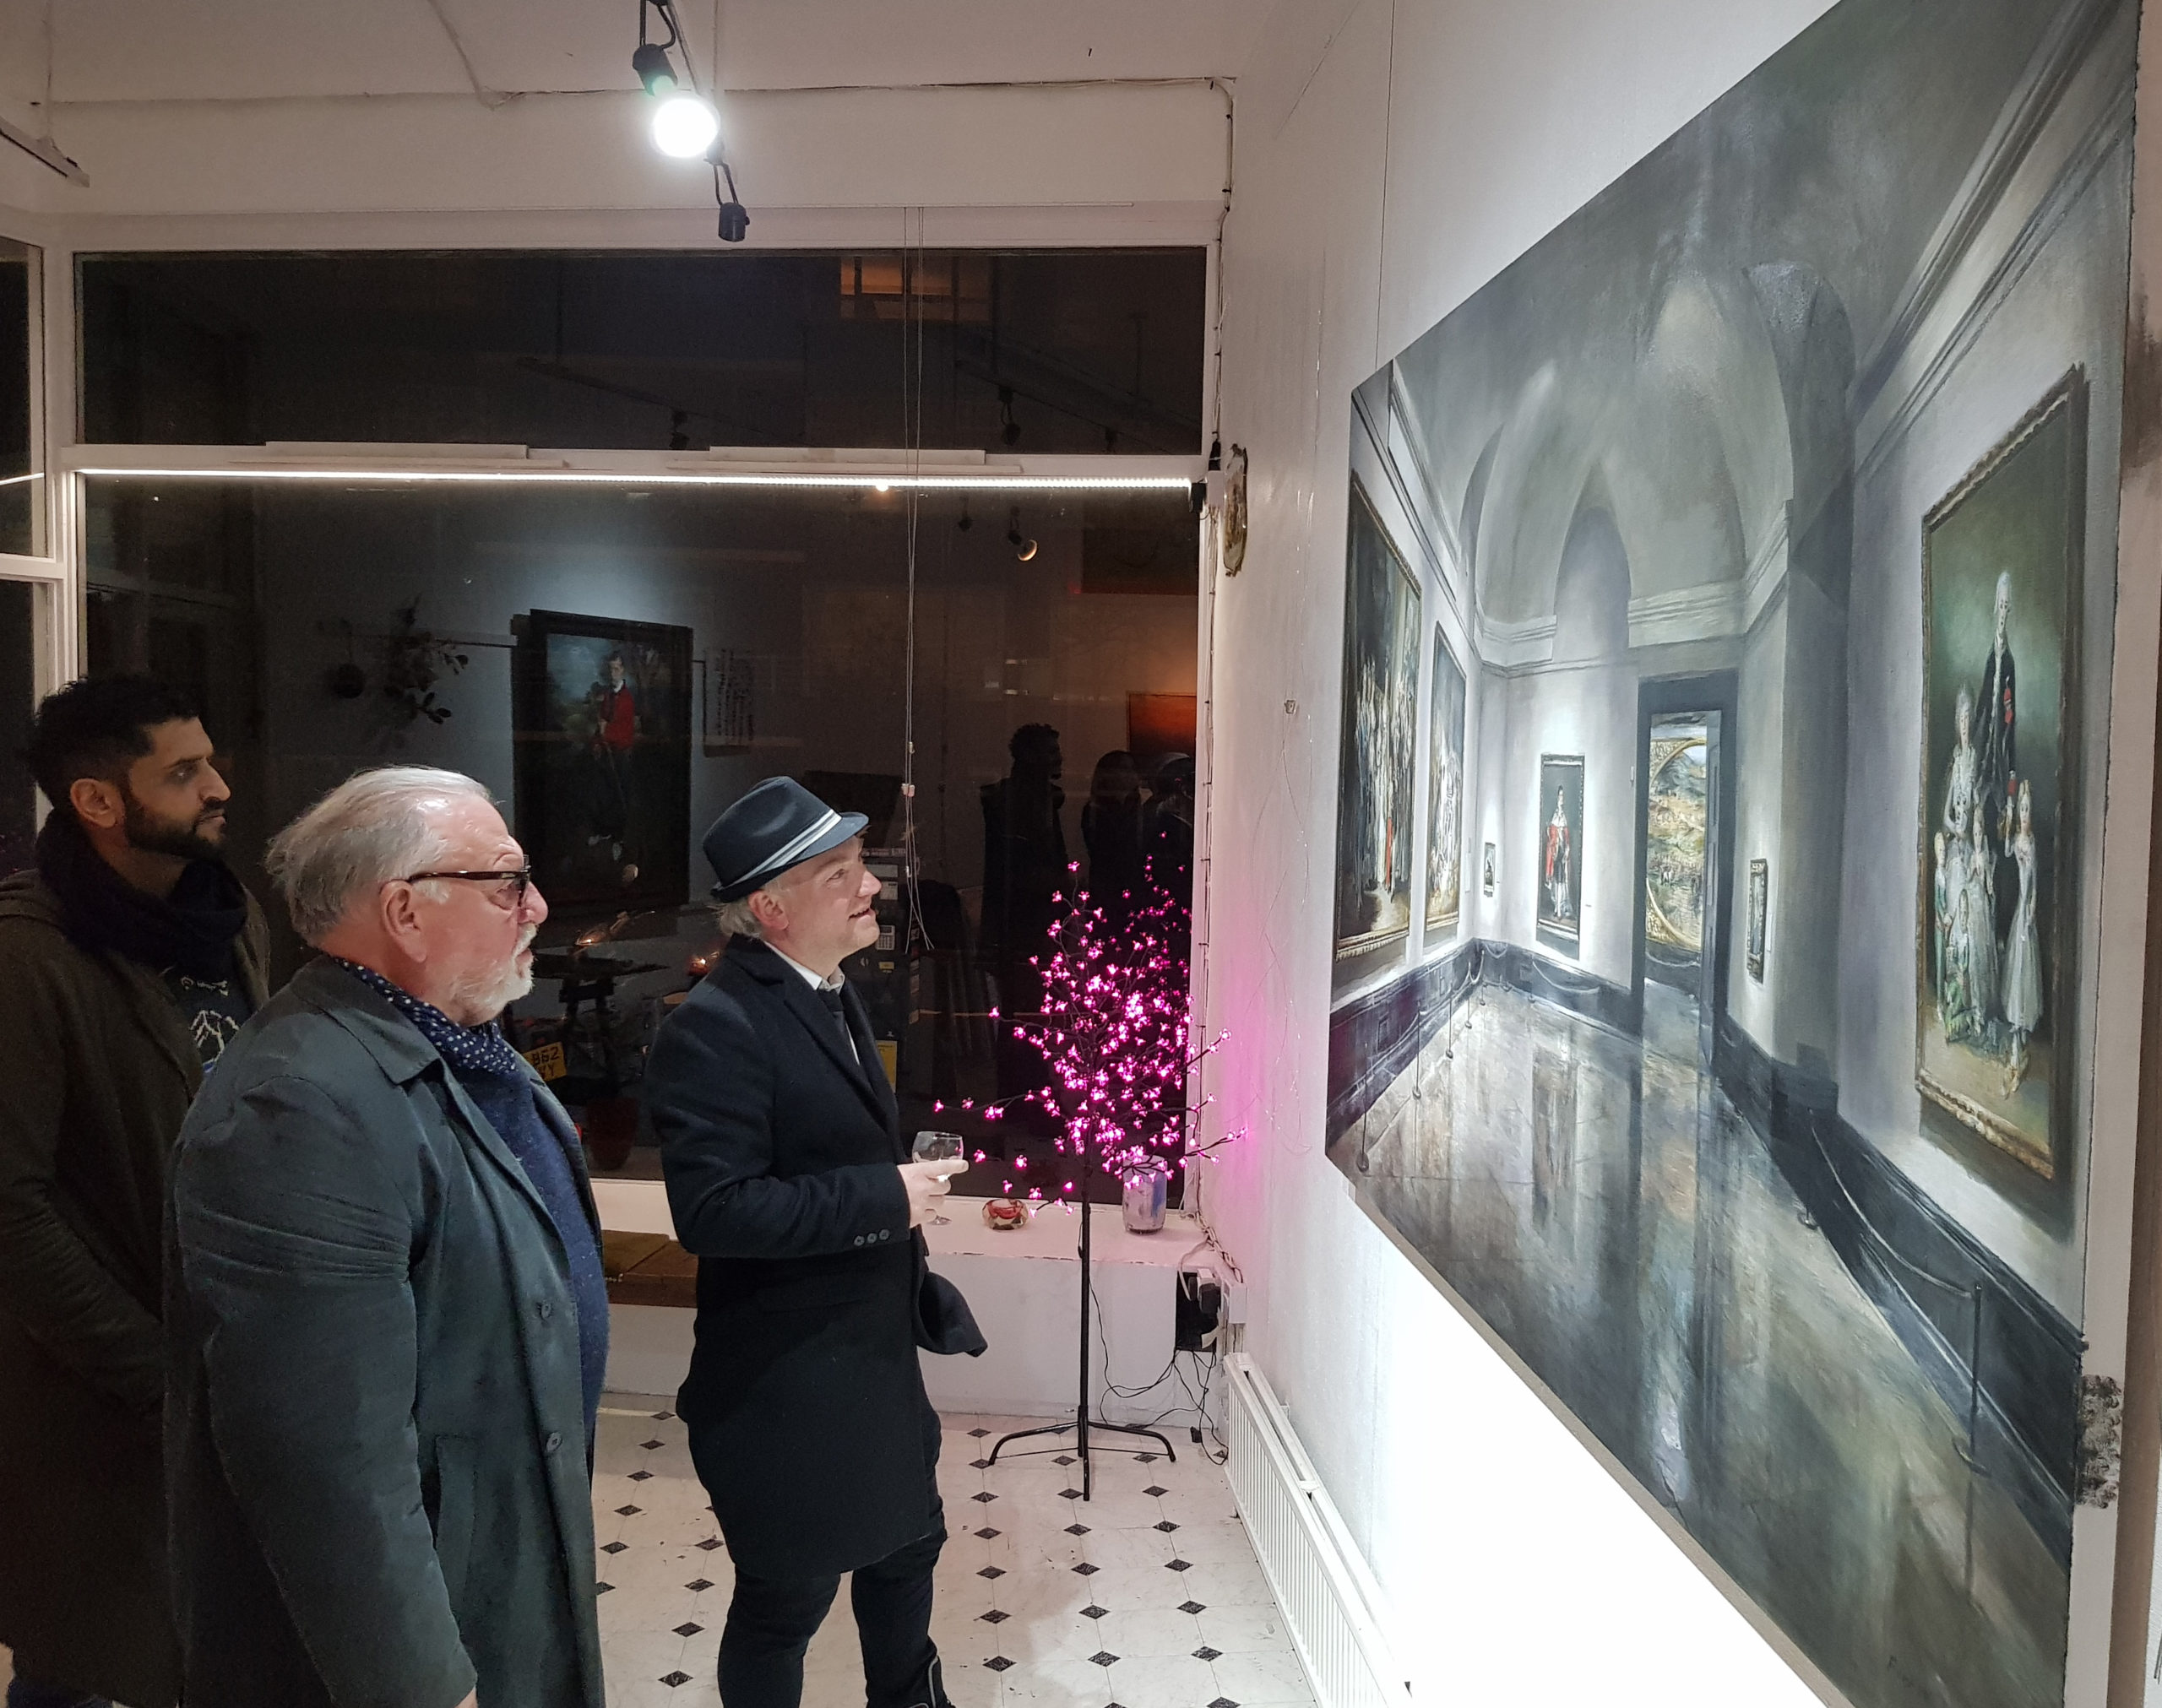 ACTOR KENNETH CRANHAM VIEWS CHRISTIAN FURR'S PAINTING GOYA IN THE PRADO AT FURR'S STUDIO AND GALLERY 'RICHMOND ATELIER' ON RICHMOND HILL DECEMBER 2019